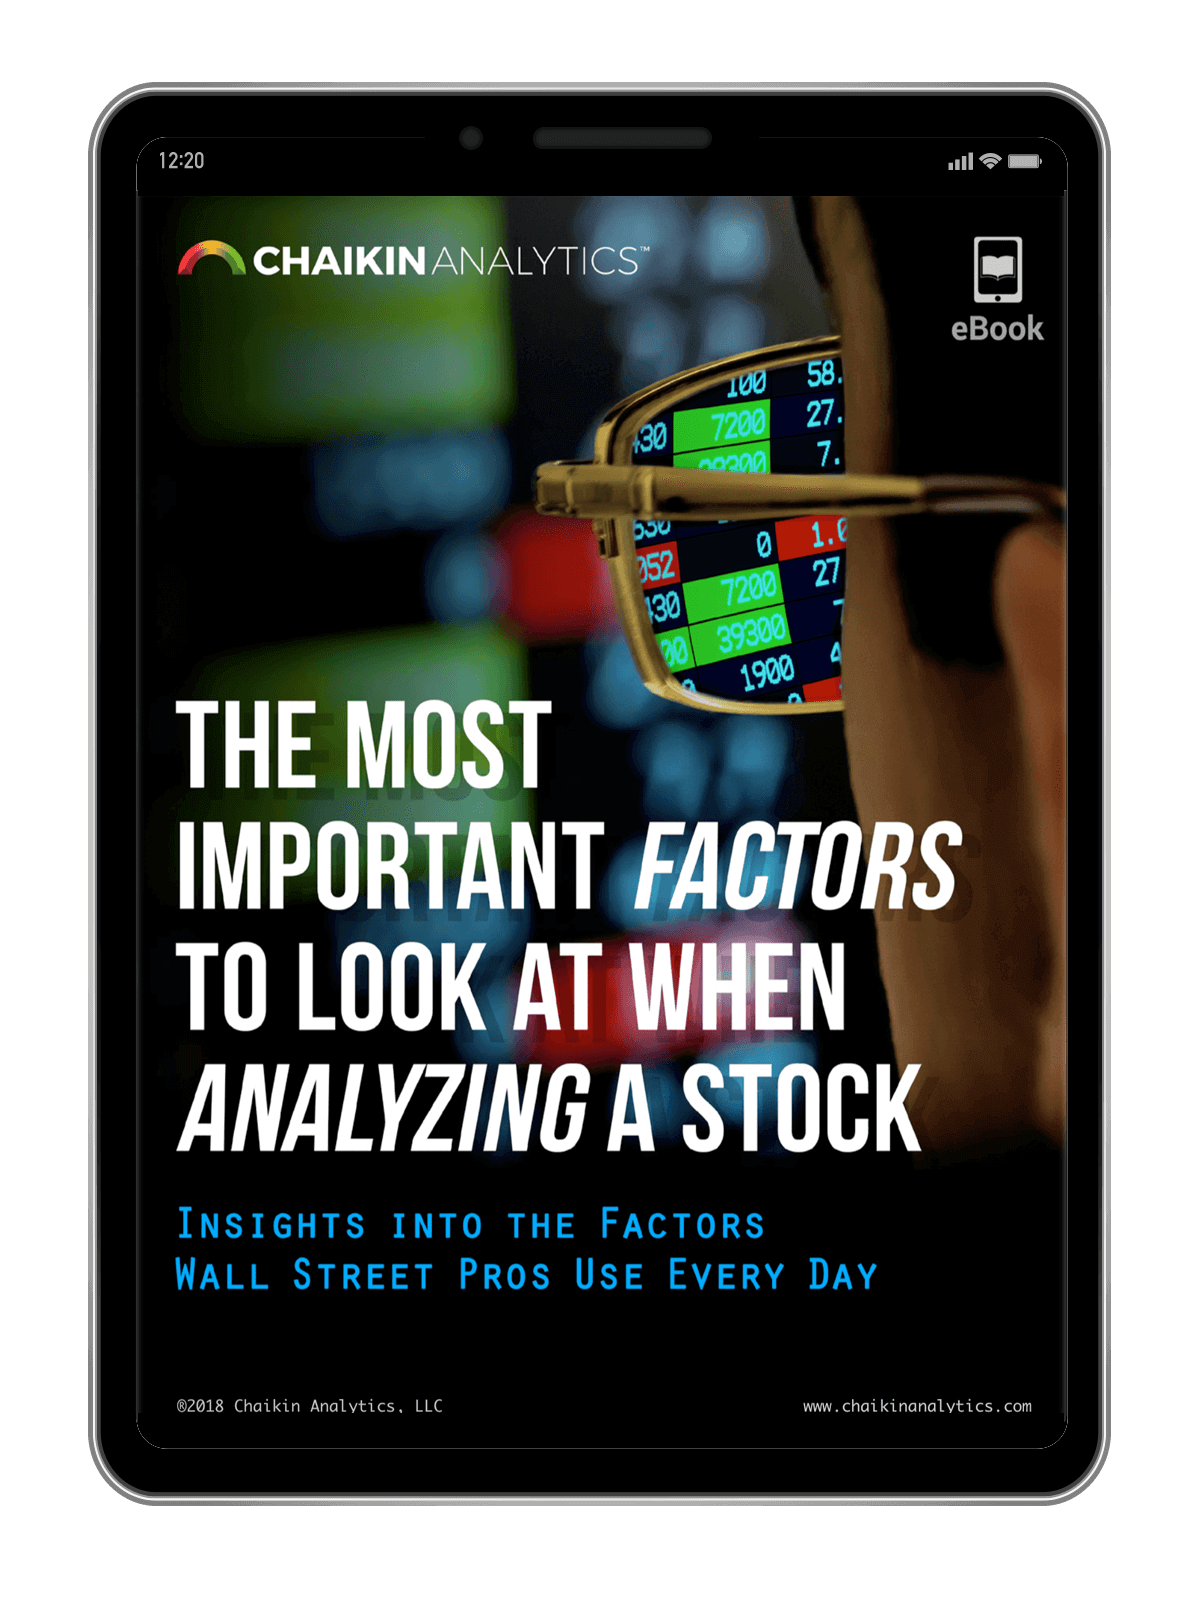 The Most Important Factors To Look At When Analyzing a Stock